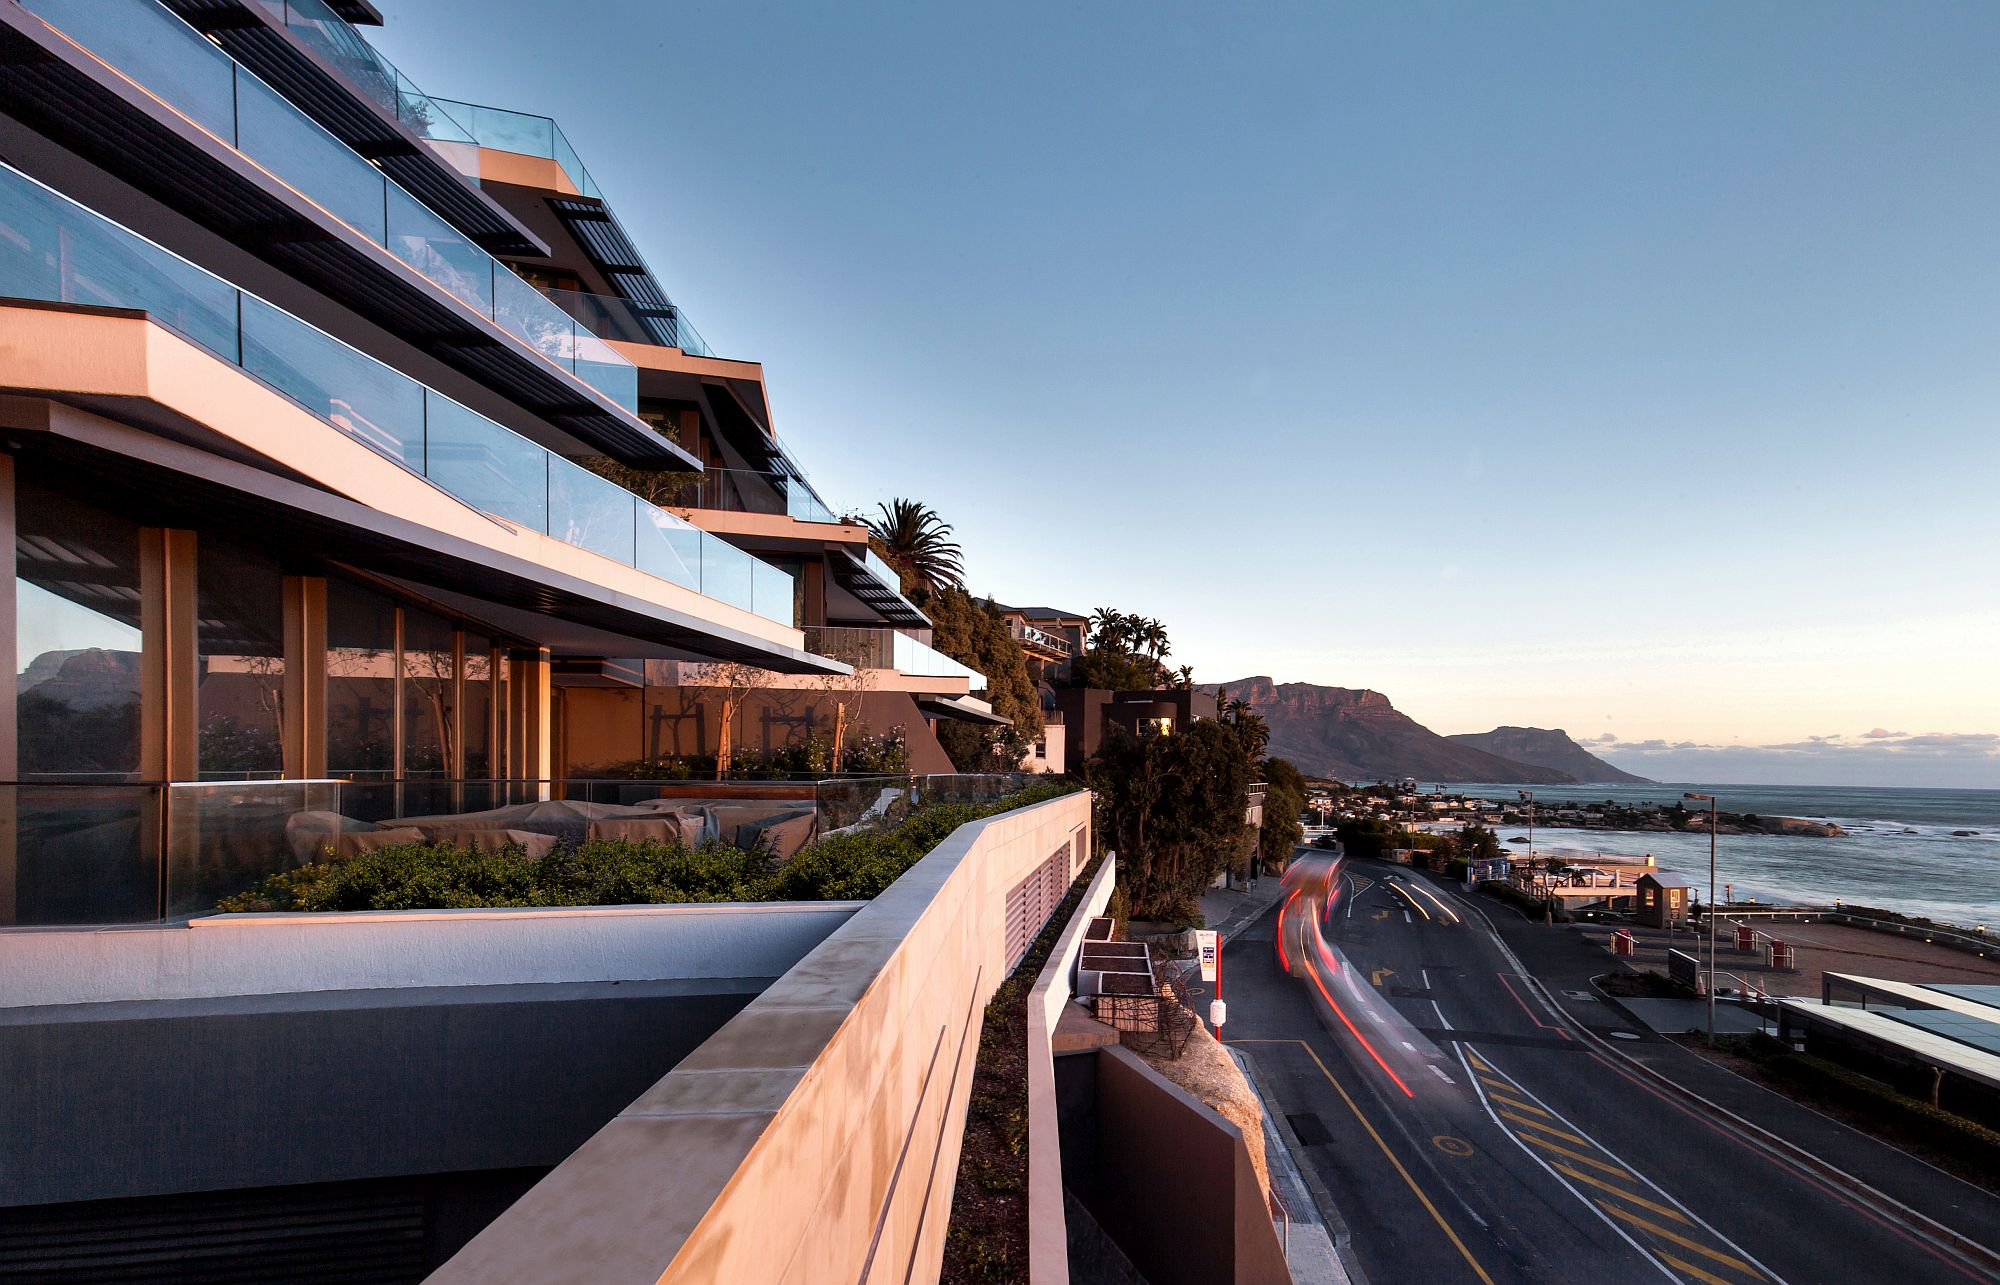 Amazing-view-of-the-Atlantic-Ocean-from-the-contemporary-apartment-building-in-Cape-Town